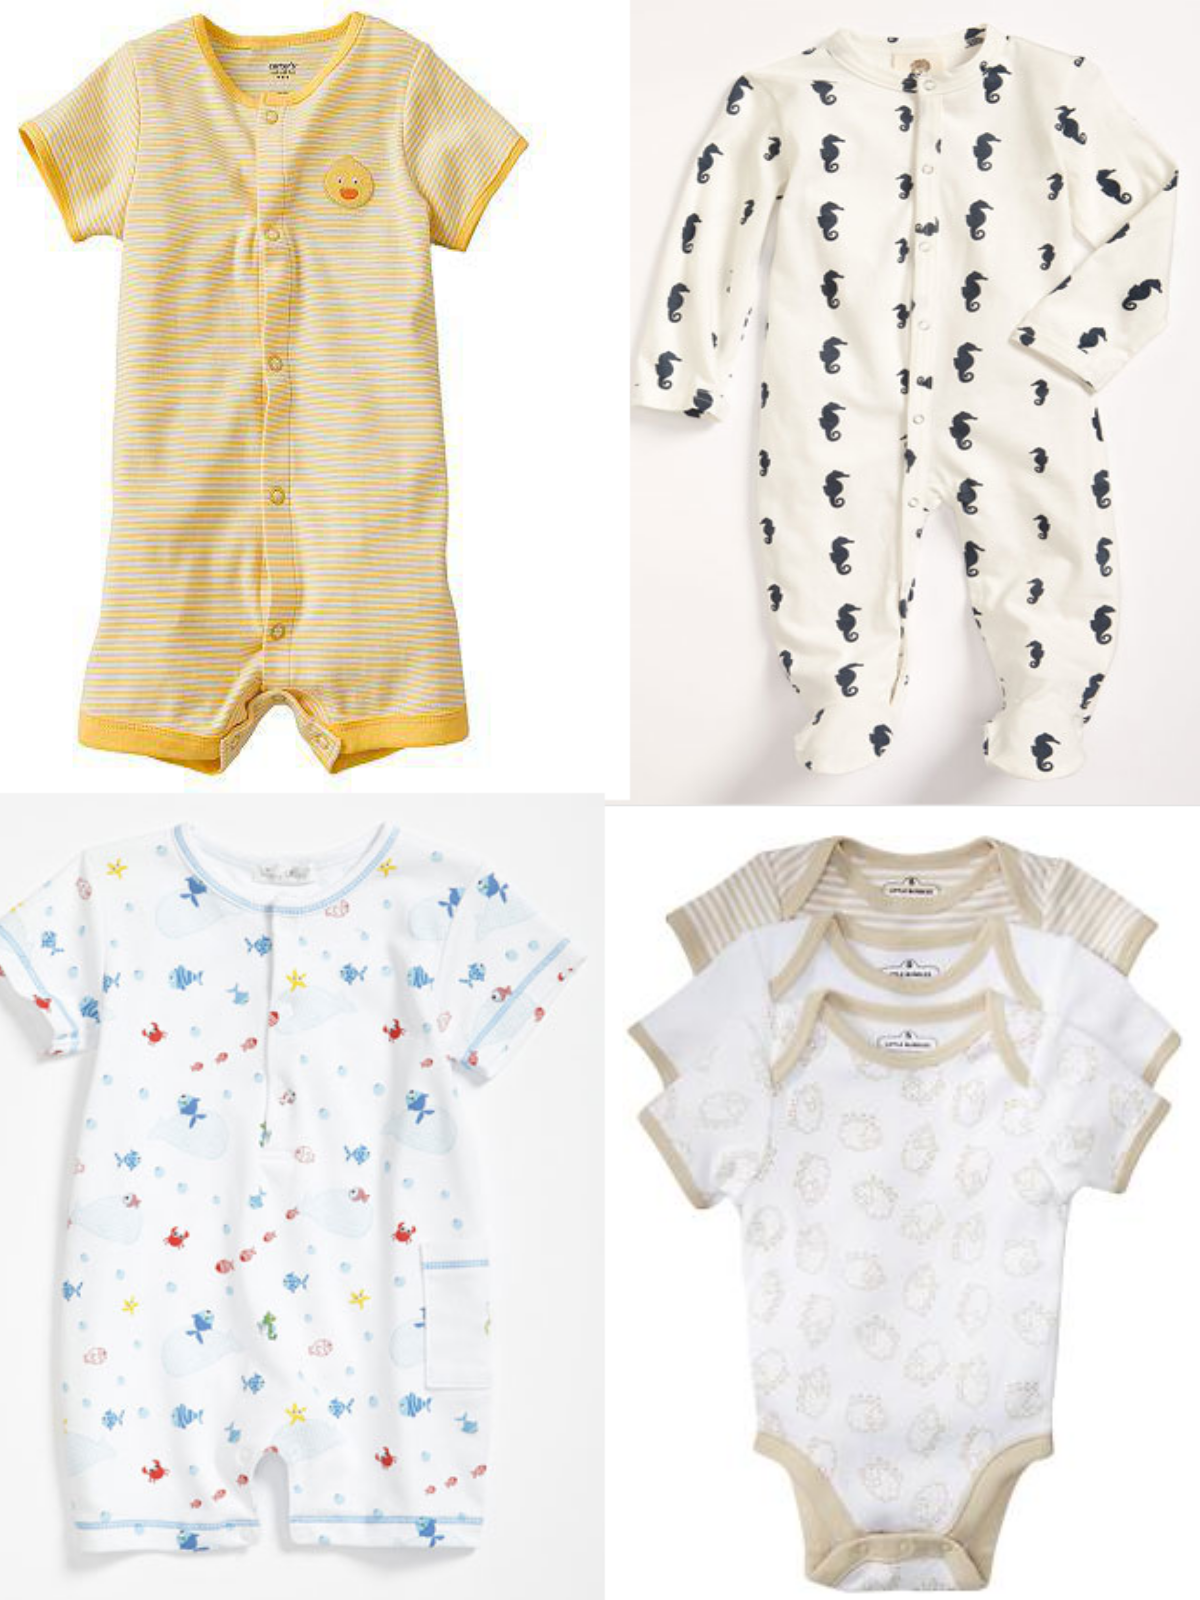 Next Stop Another Baby Cute ish Gender Neutral Clothes